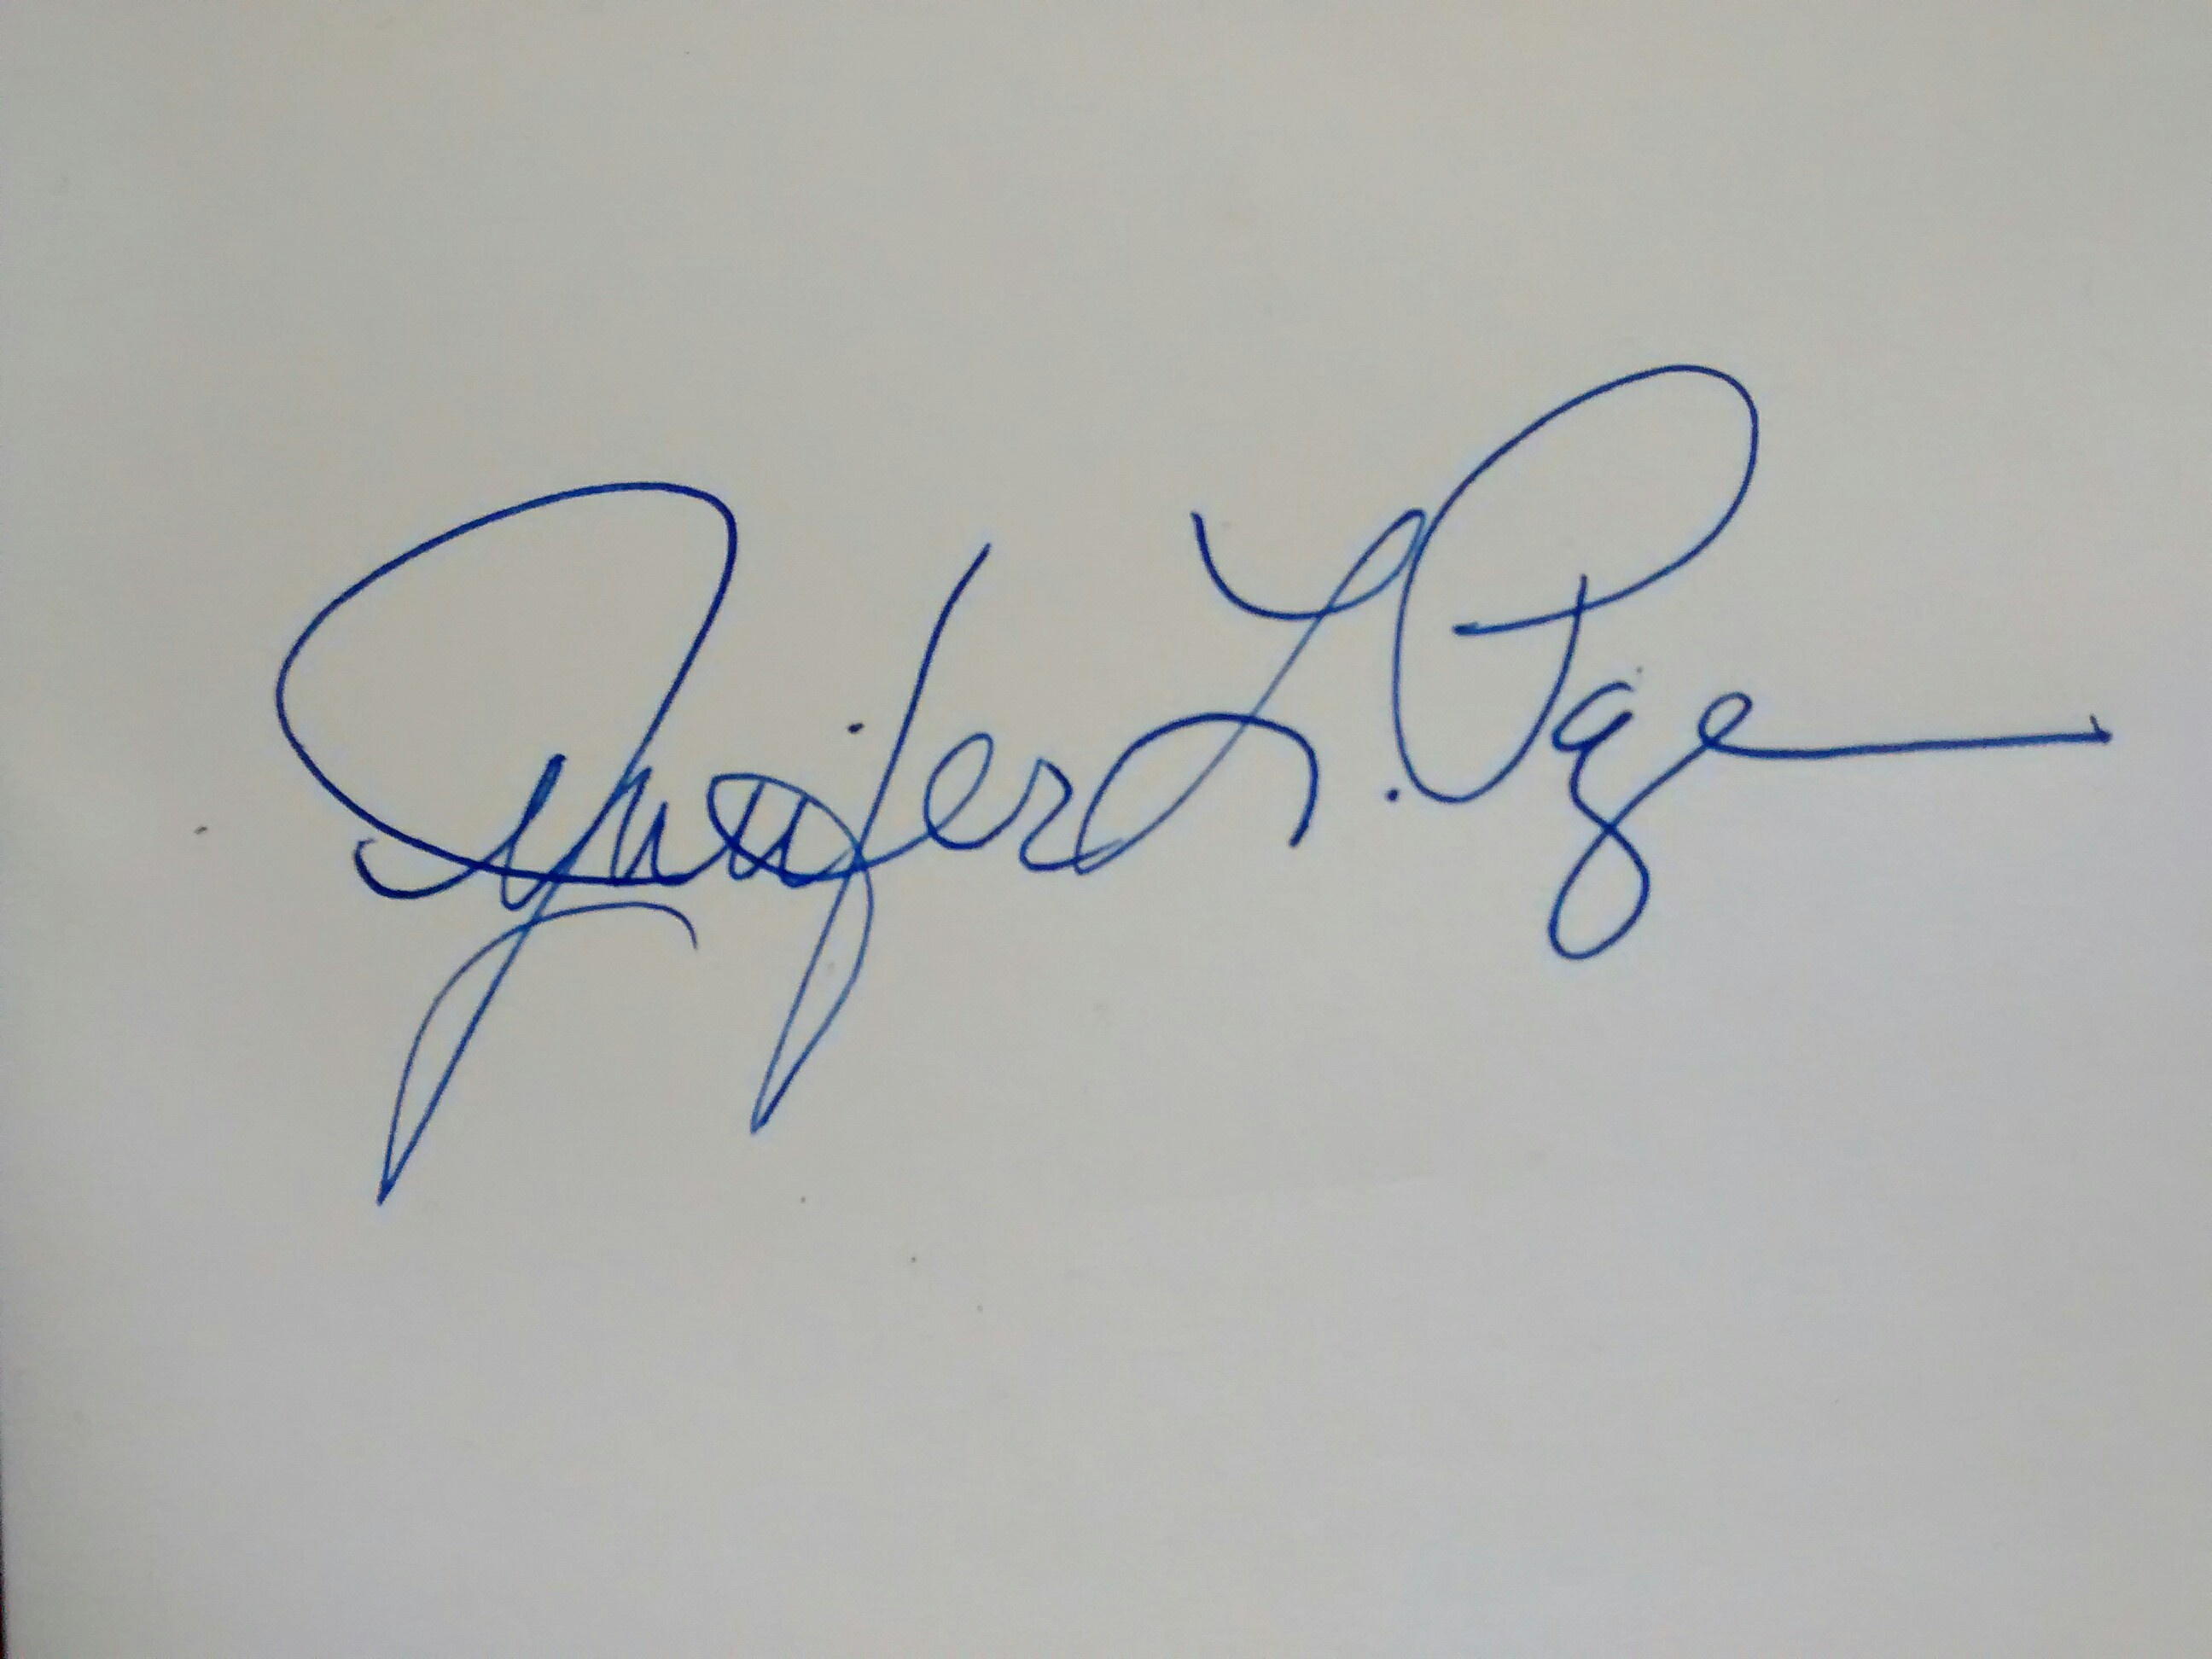 jennifer page Signature